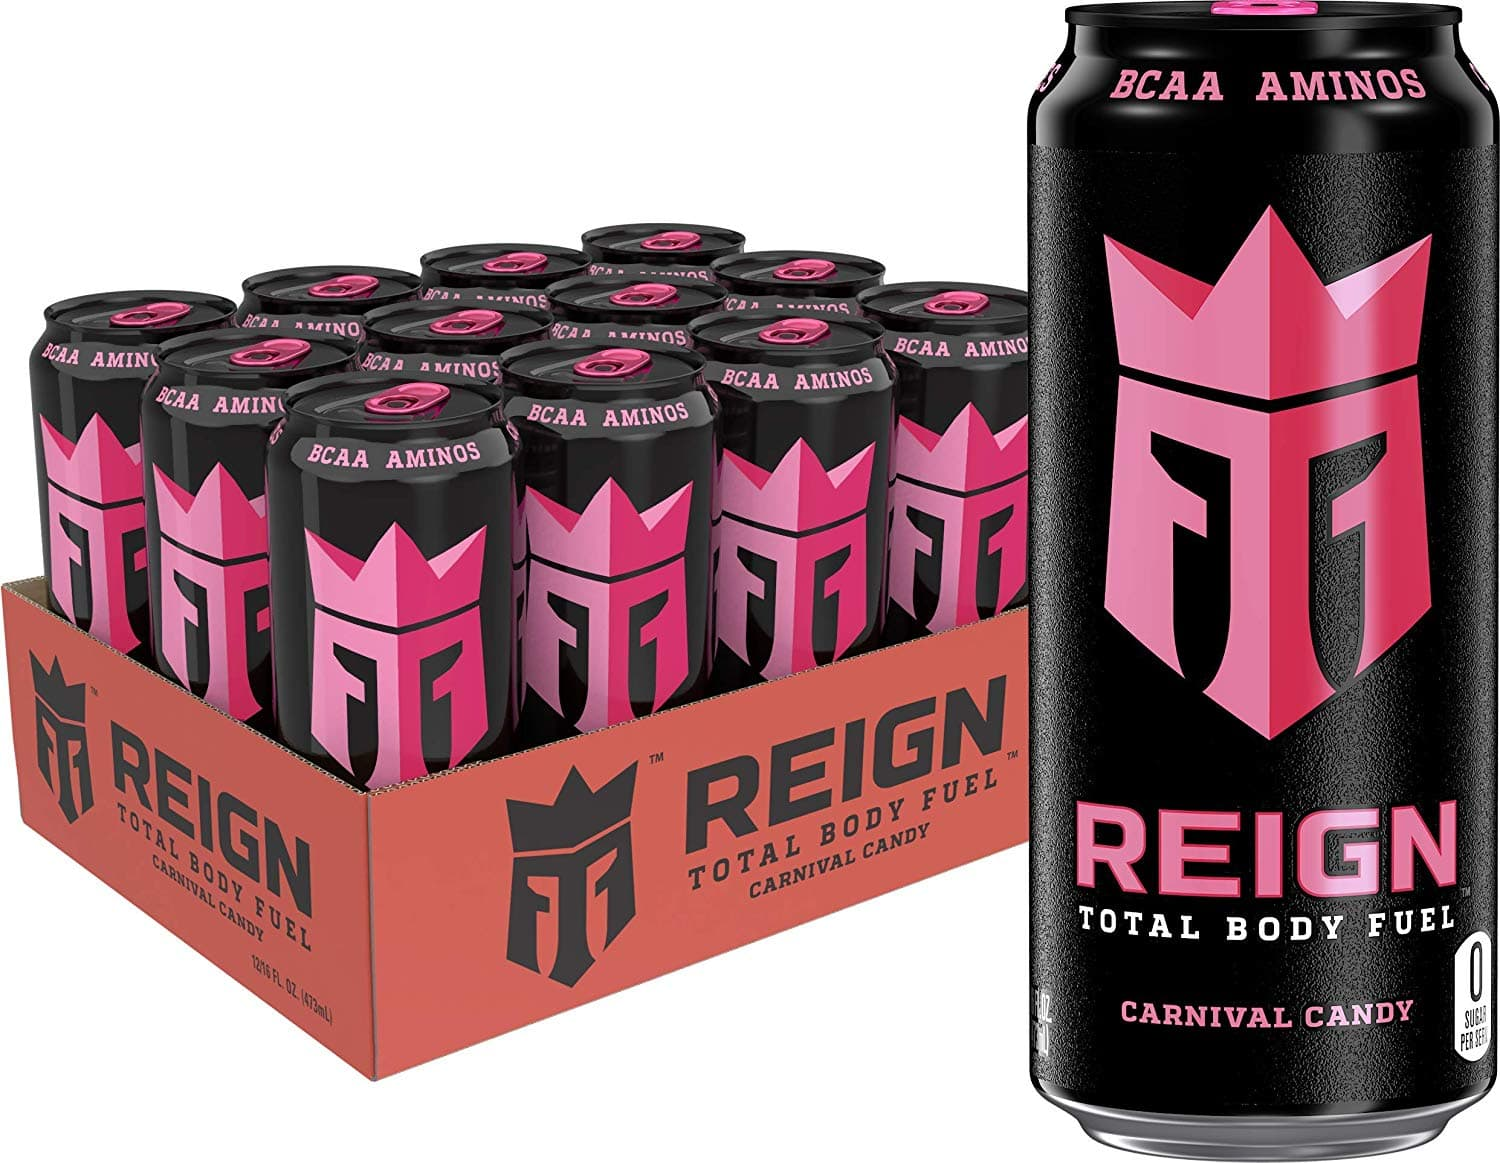 Reign Total Body Fuel, Carnival Candy, Fitness & Performance Drink, 16 oz (Pack of 12) $18.98